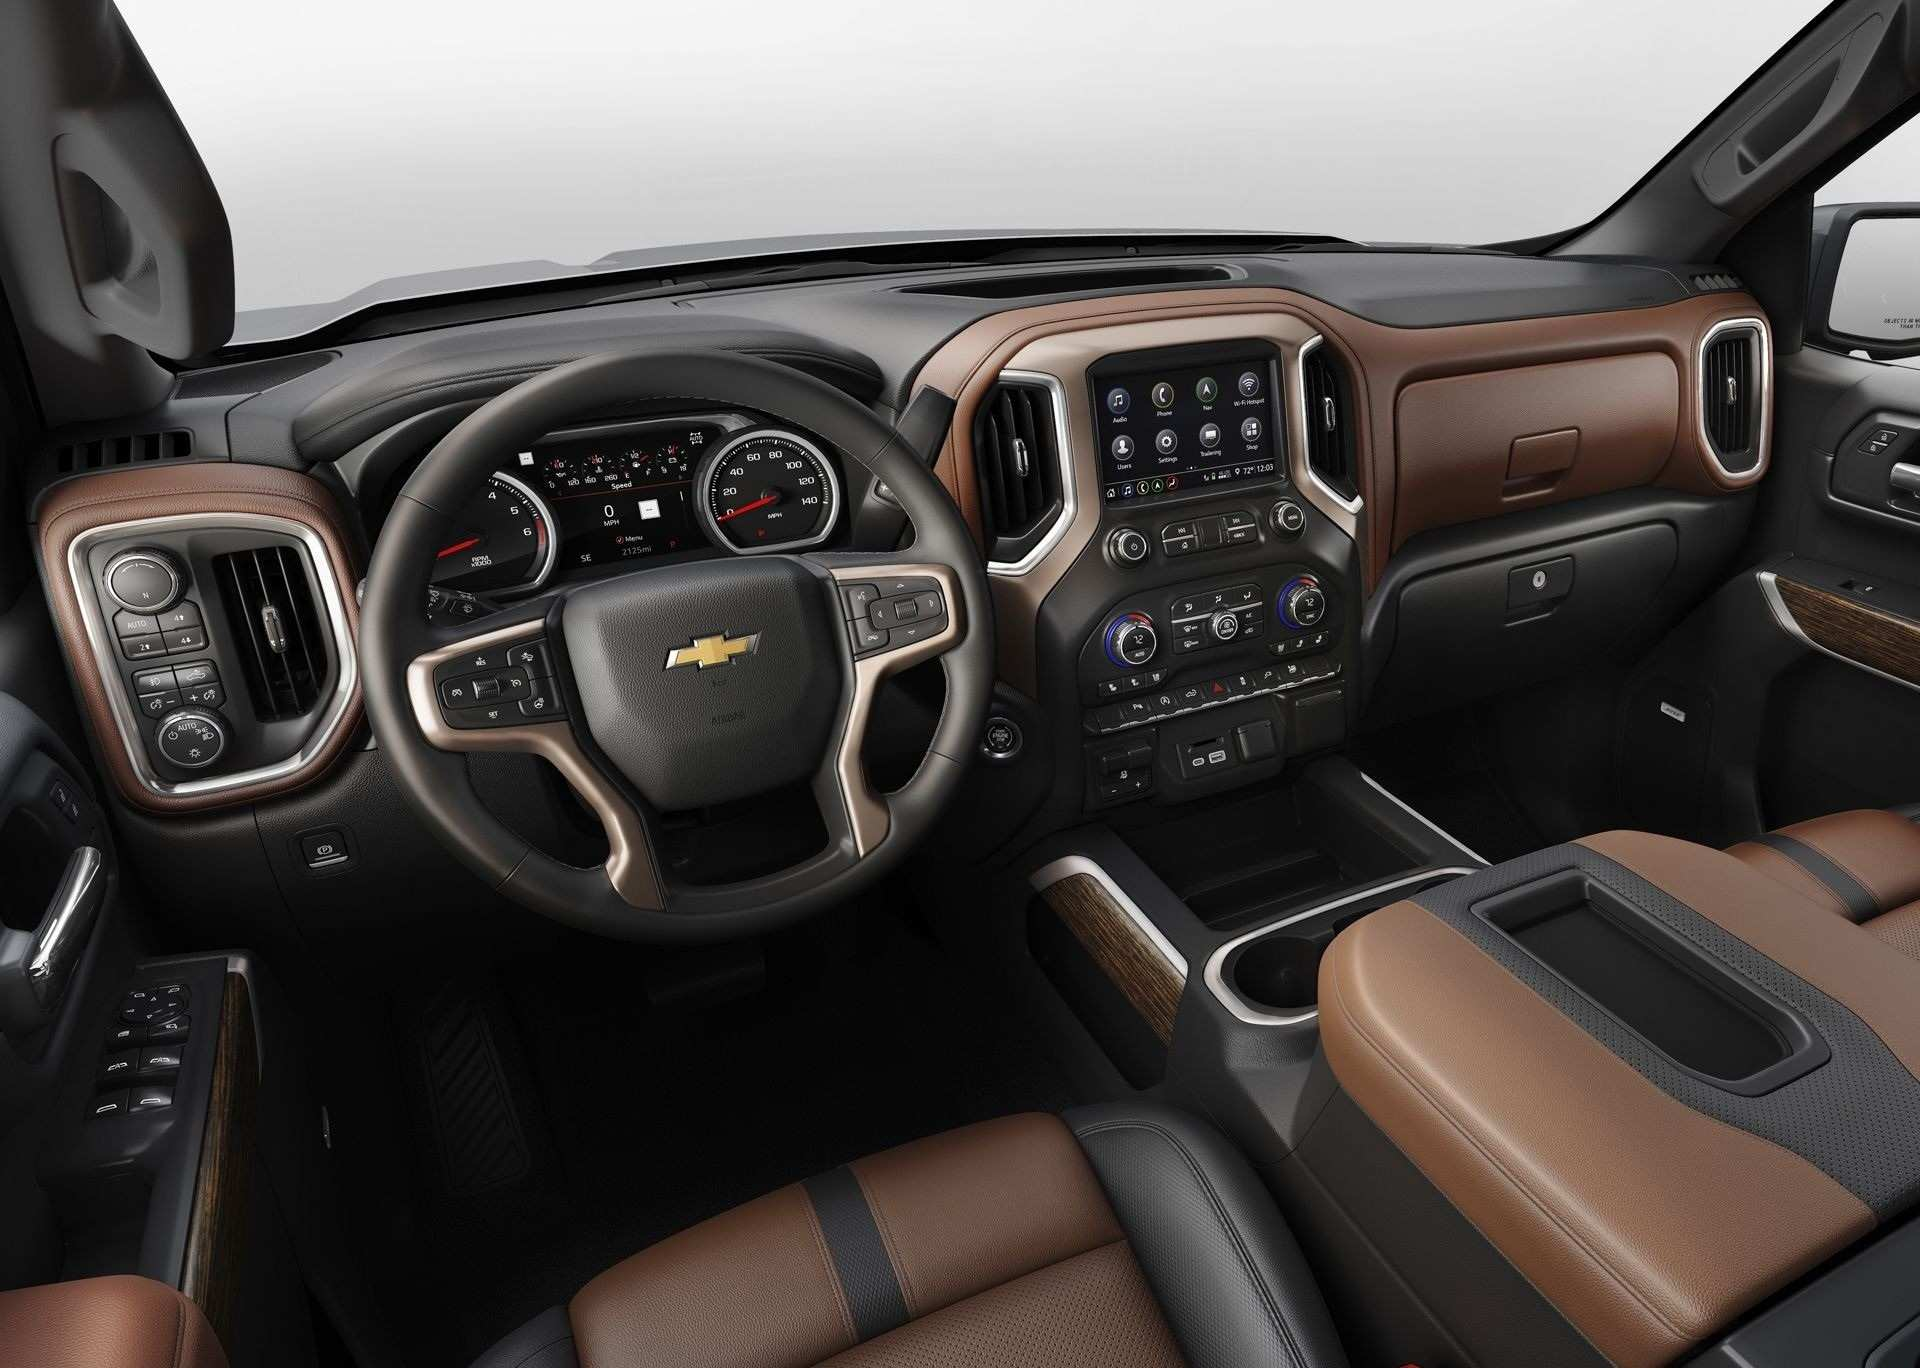 41 The Chevrolet Trailblazer 2020 Interior Redesign And Review